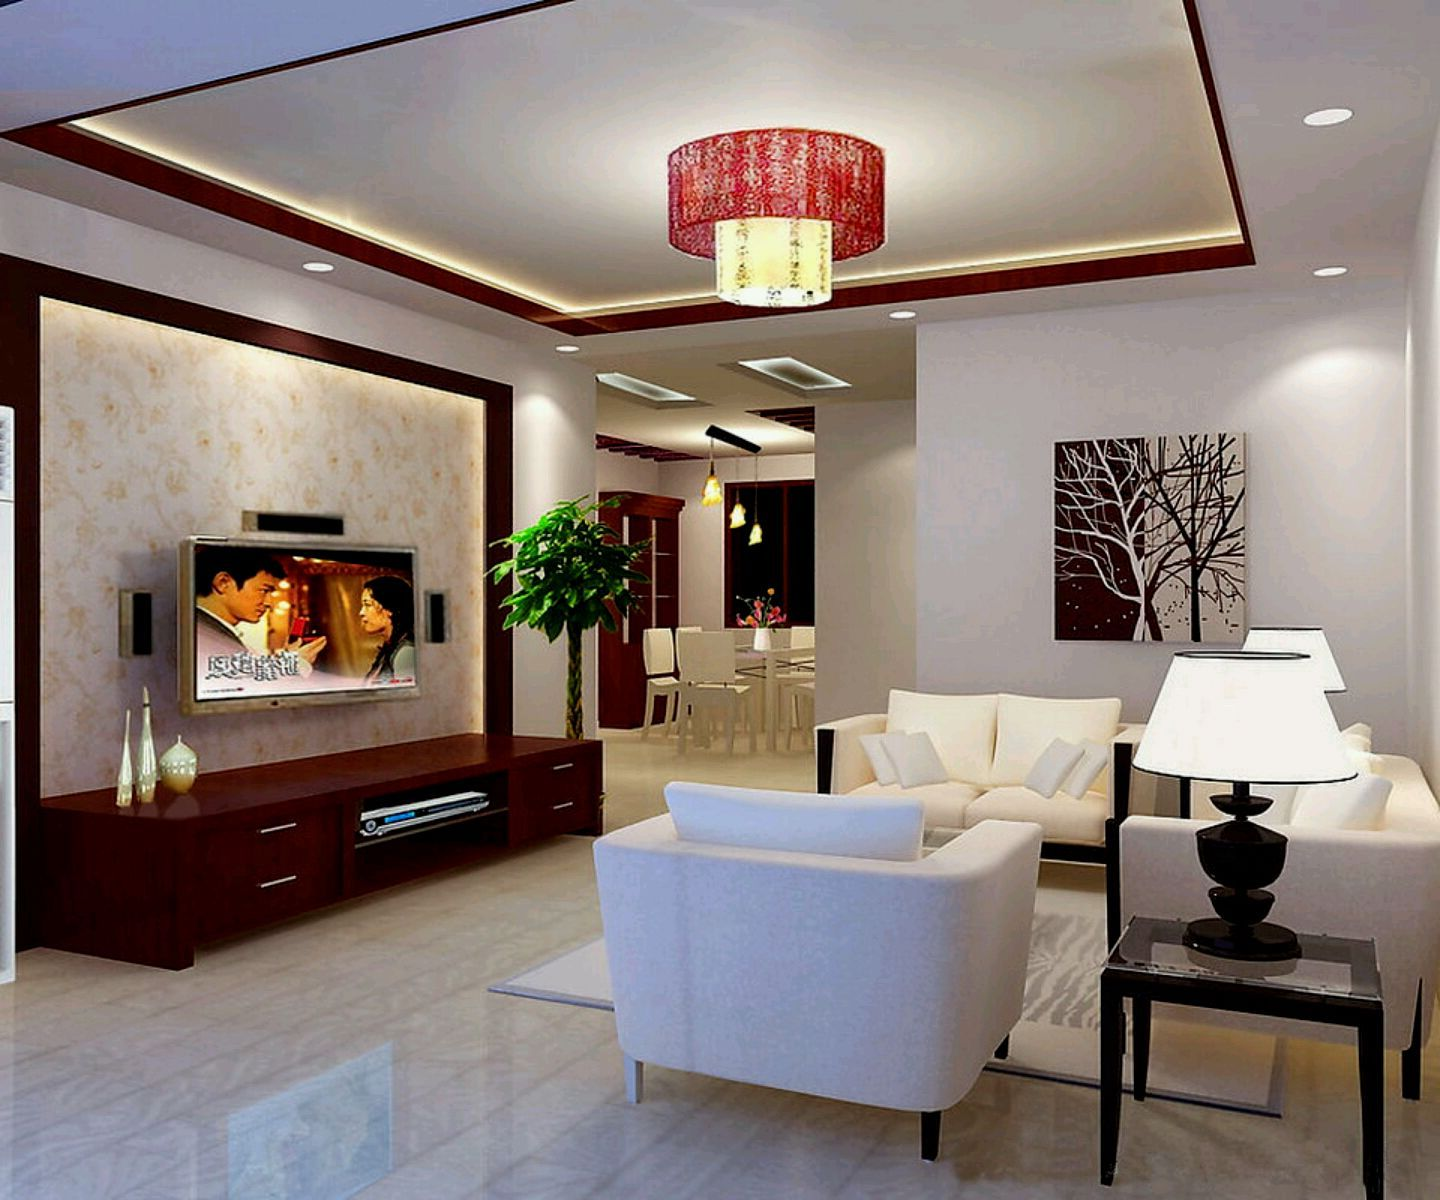 Ceiling Designs For Bedrooms Adorable Ceilingdesignfordrawingroominpakistanceilingdesignsfor Design Inspiration